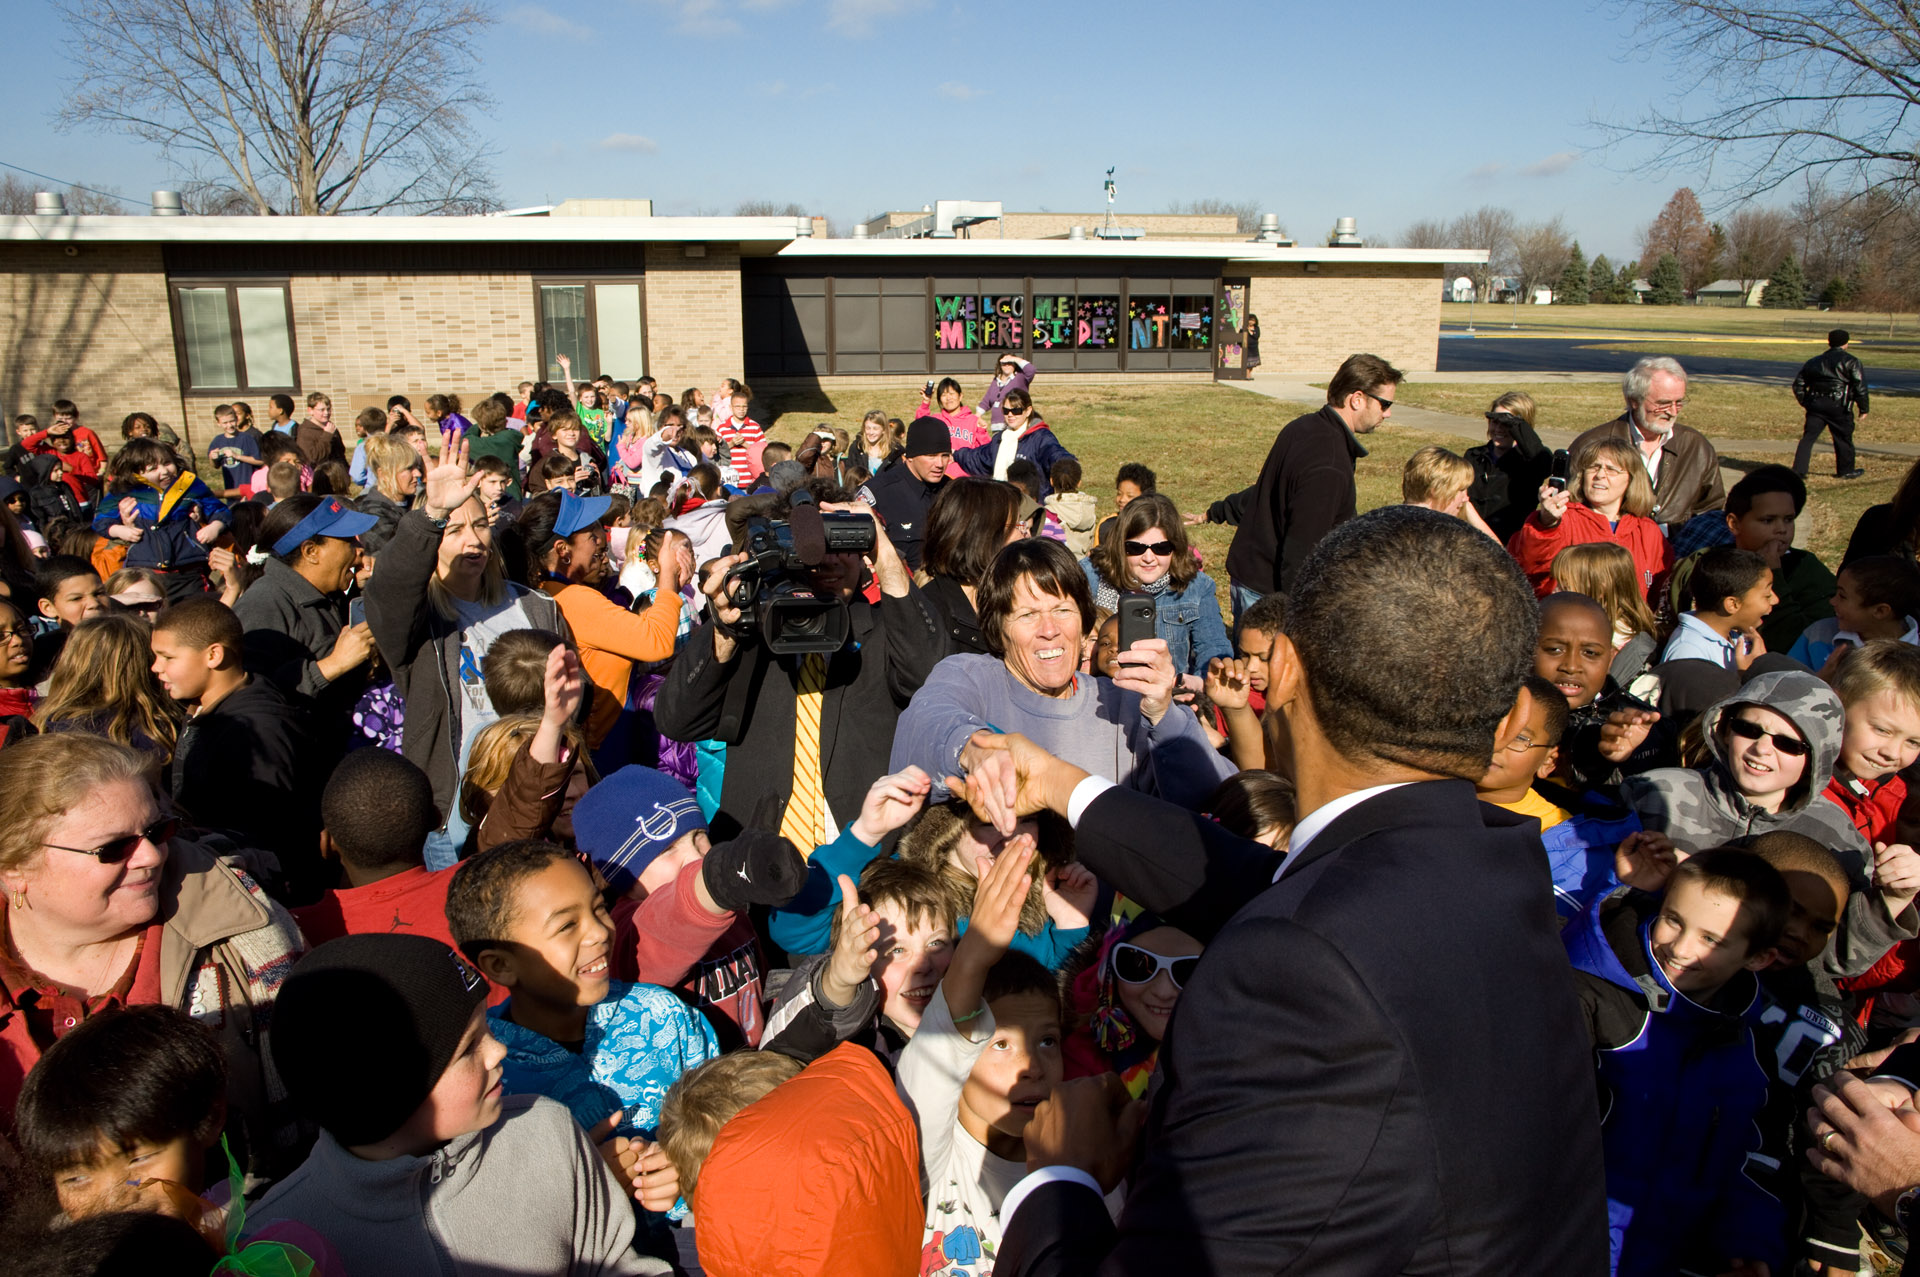 President Obama at a school in Kokomo, Indiana